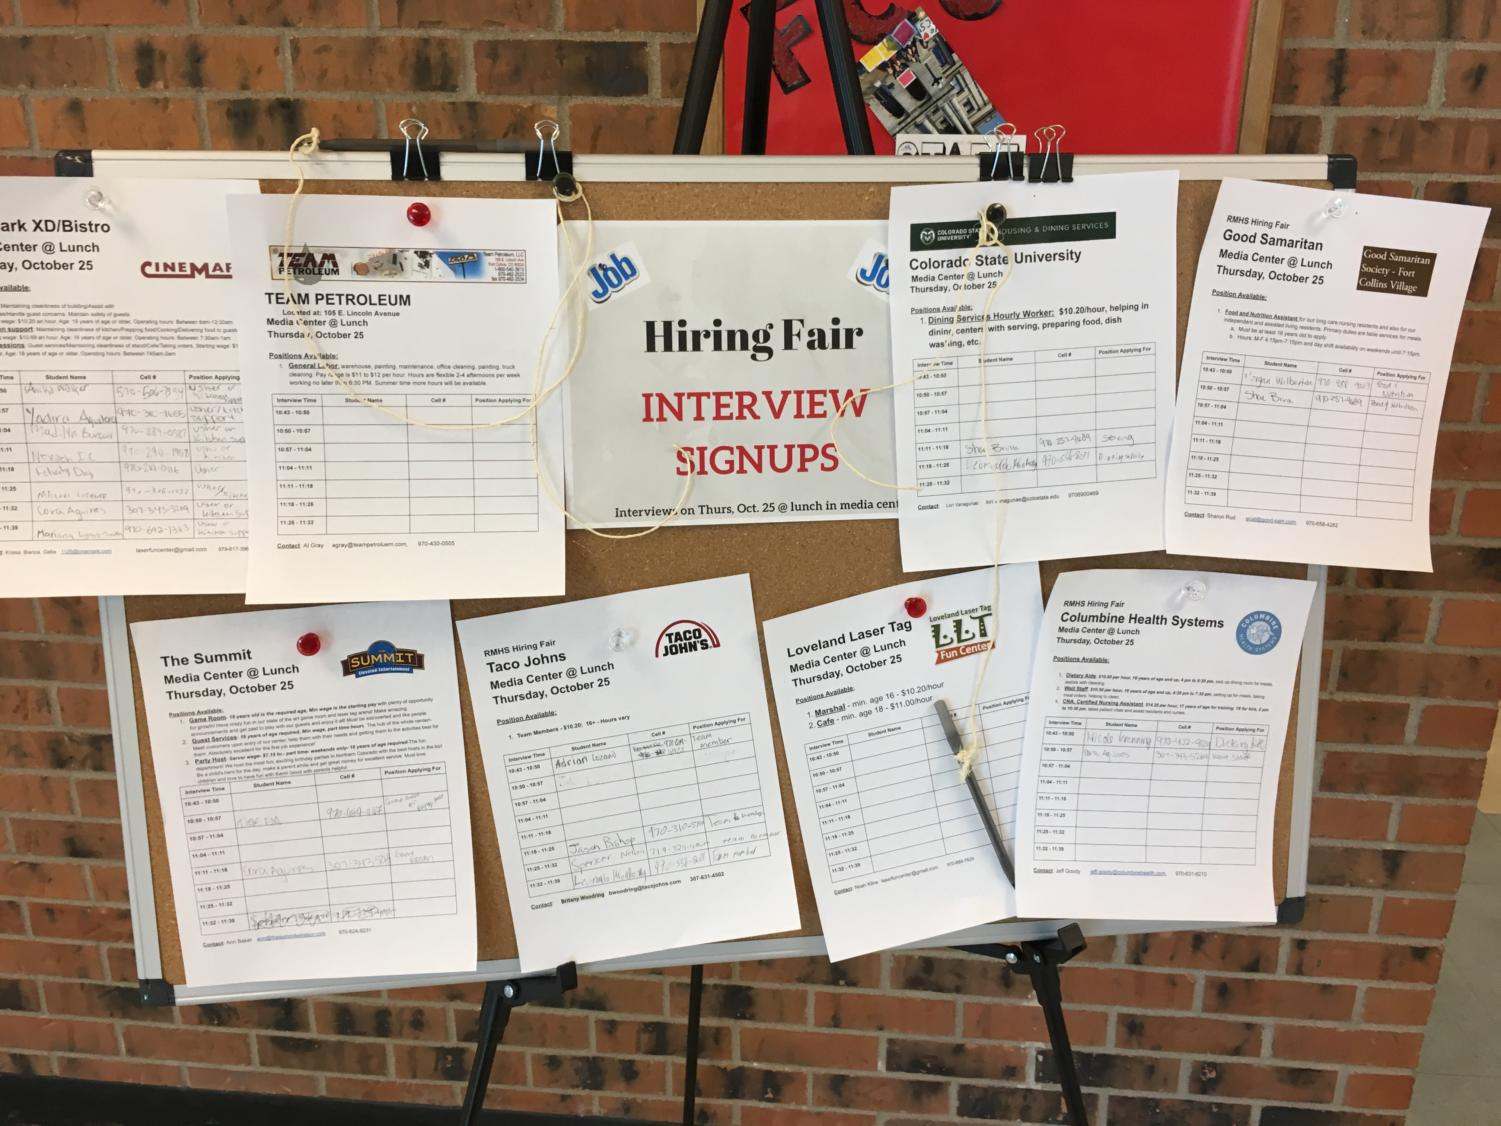 The Hiring Fair sign up board is located near the foods lab.